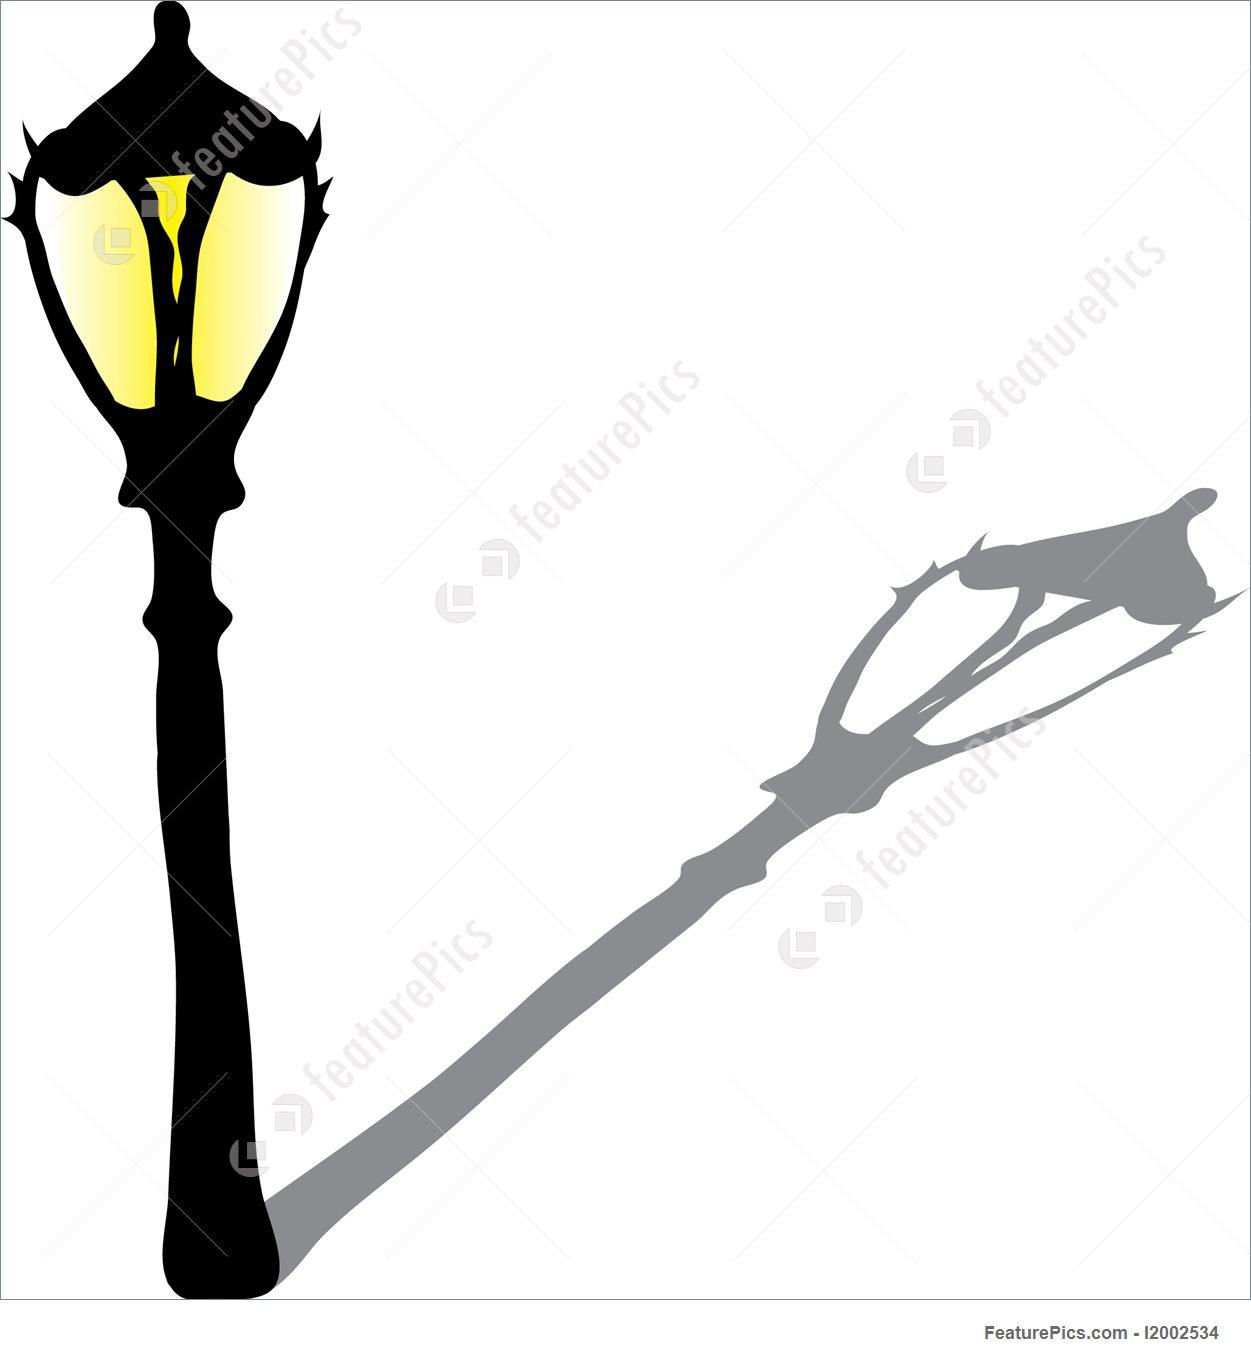 1251x1360 Lamp Post Silhouette Clipart Victorian